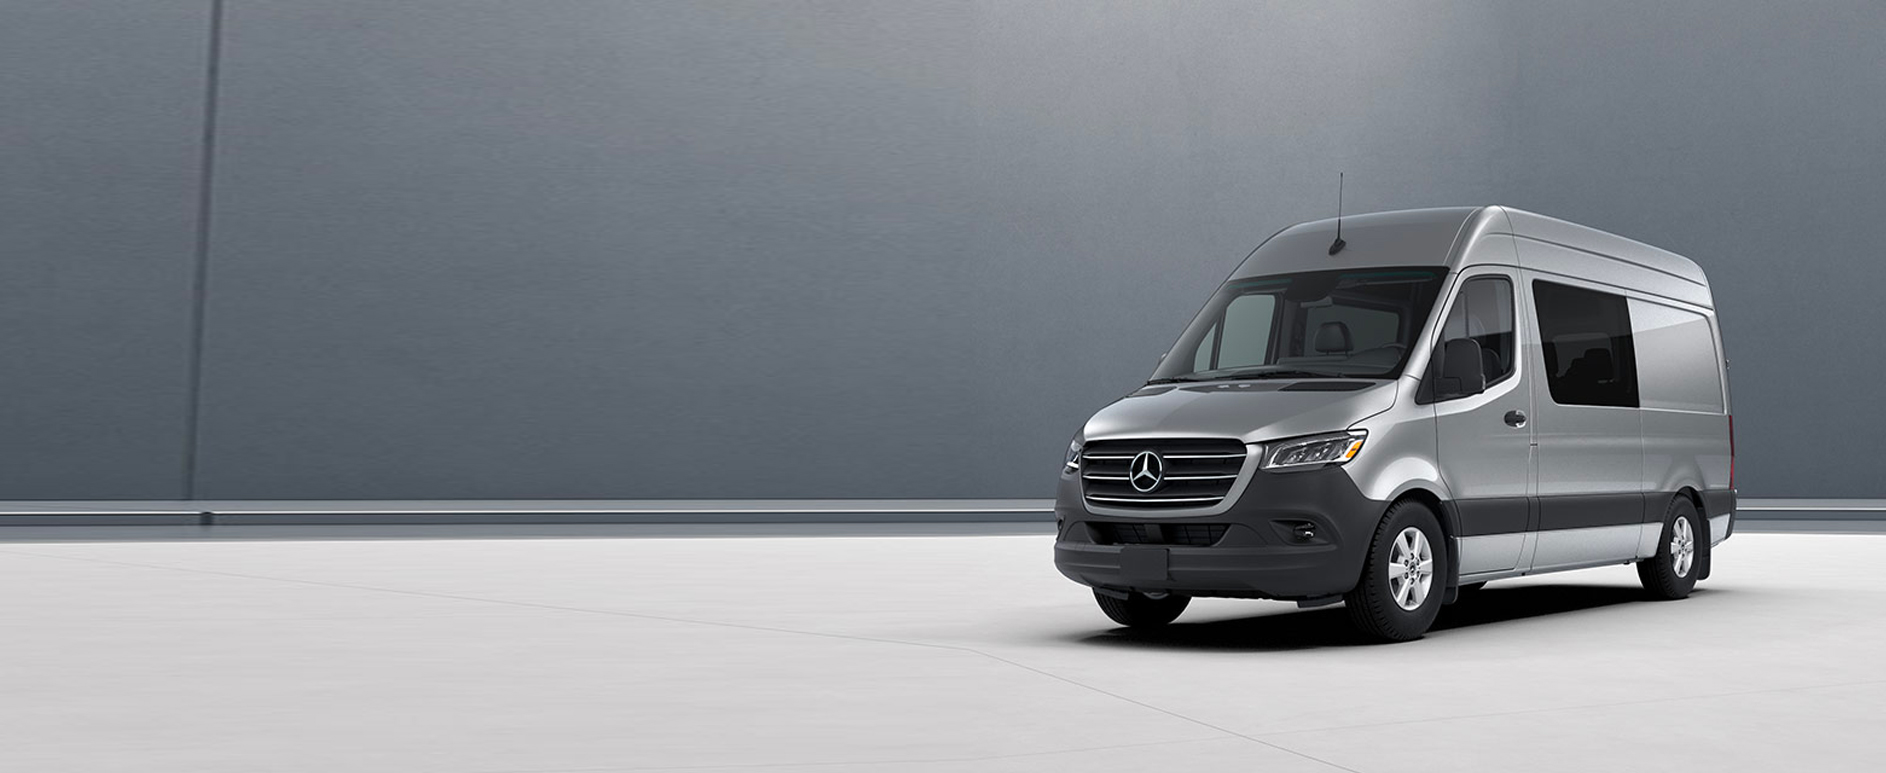 2019 Mercedes-Benz Sprinter Crew Van Info, Specs, and Images